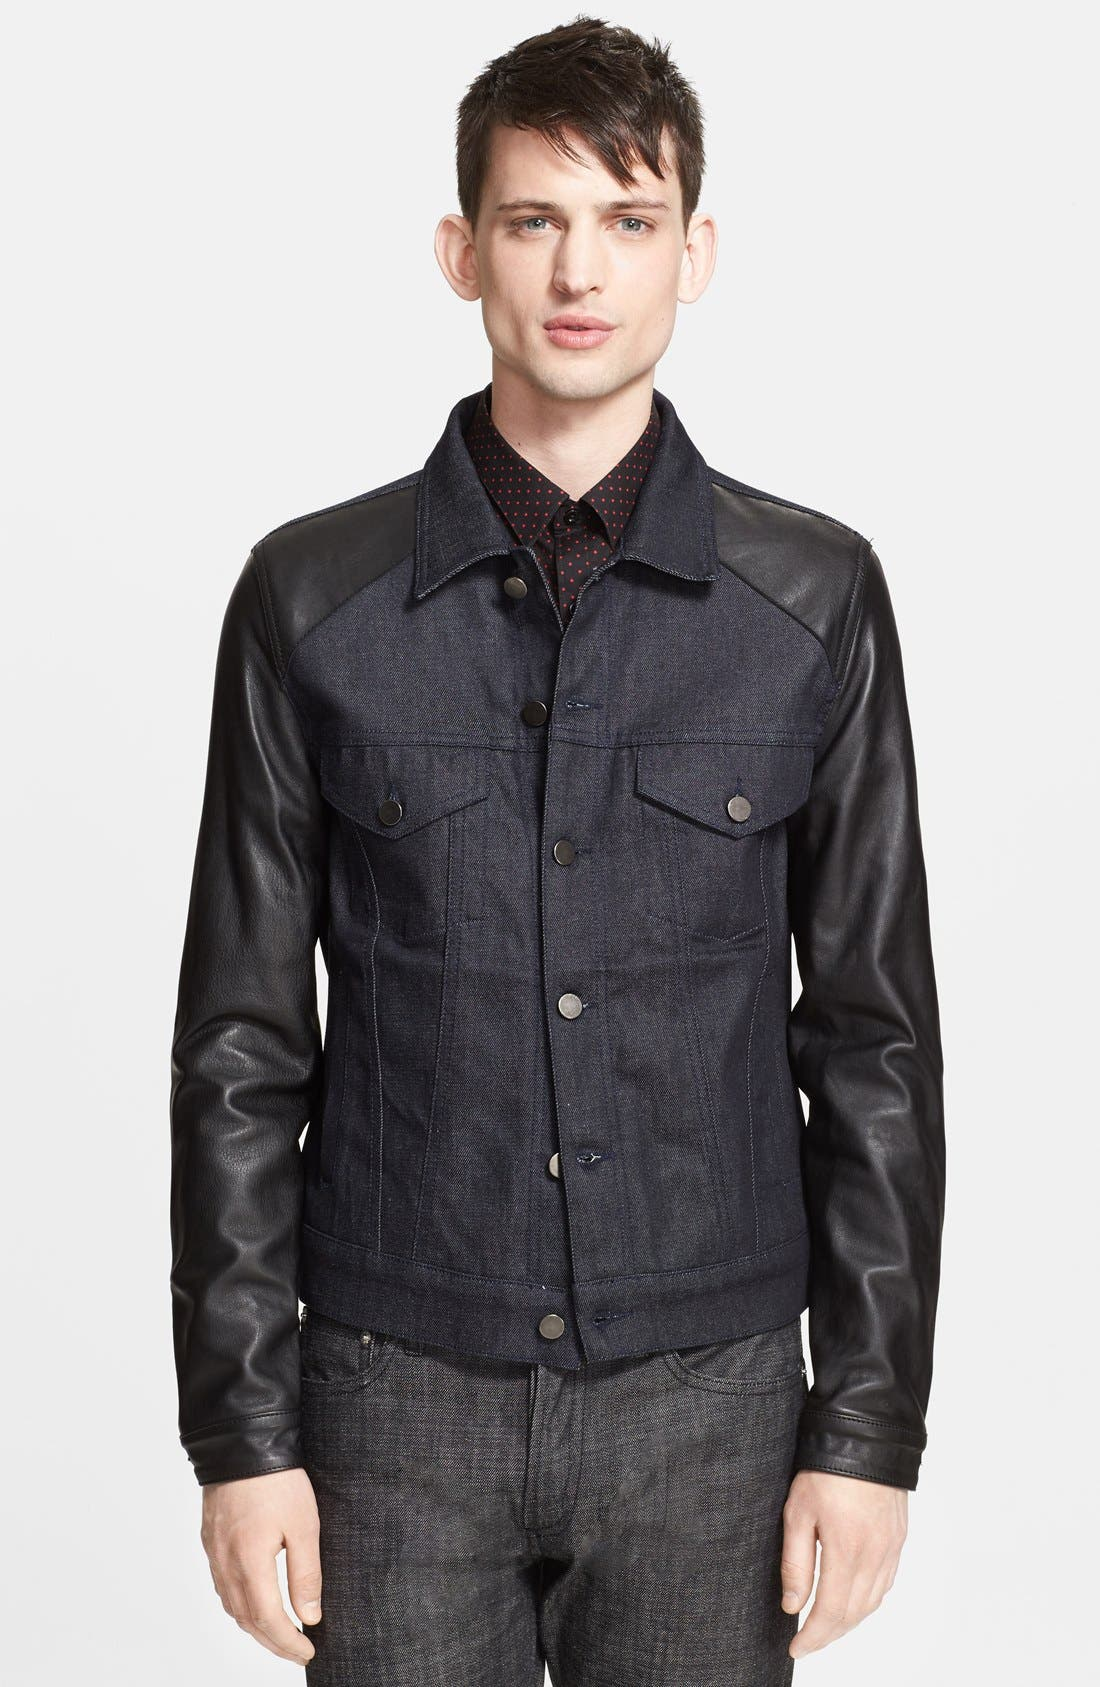 Main Image - The Kooples Denim Jacket with Leather Sleeves